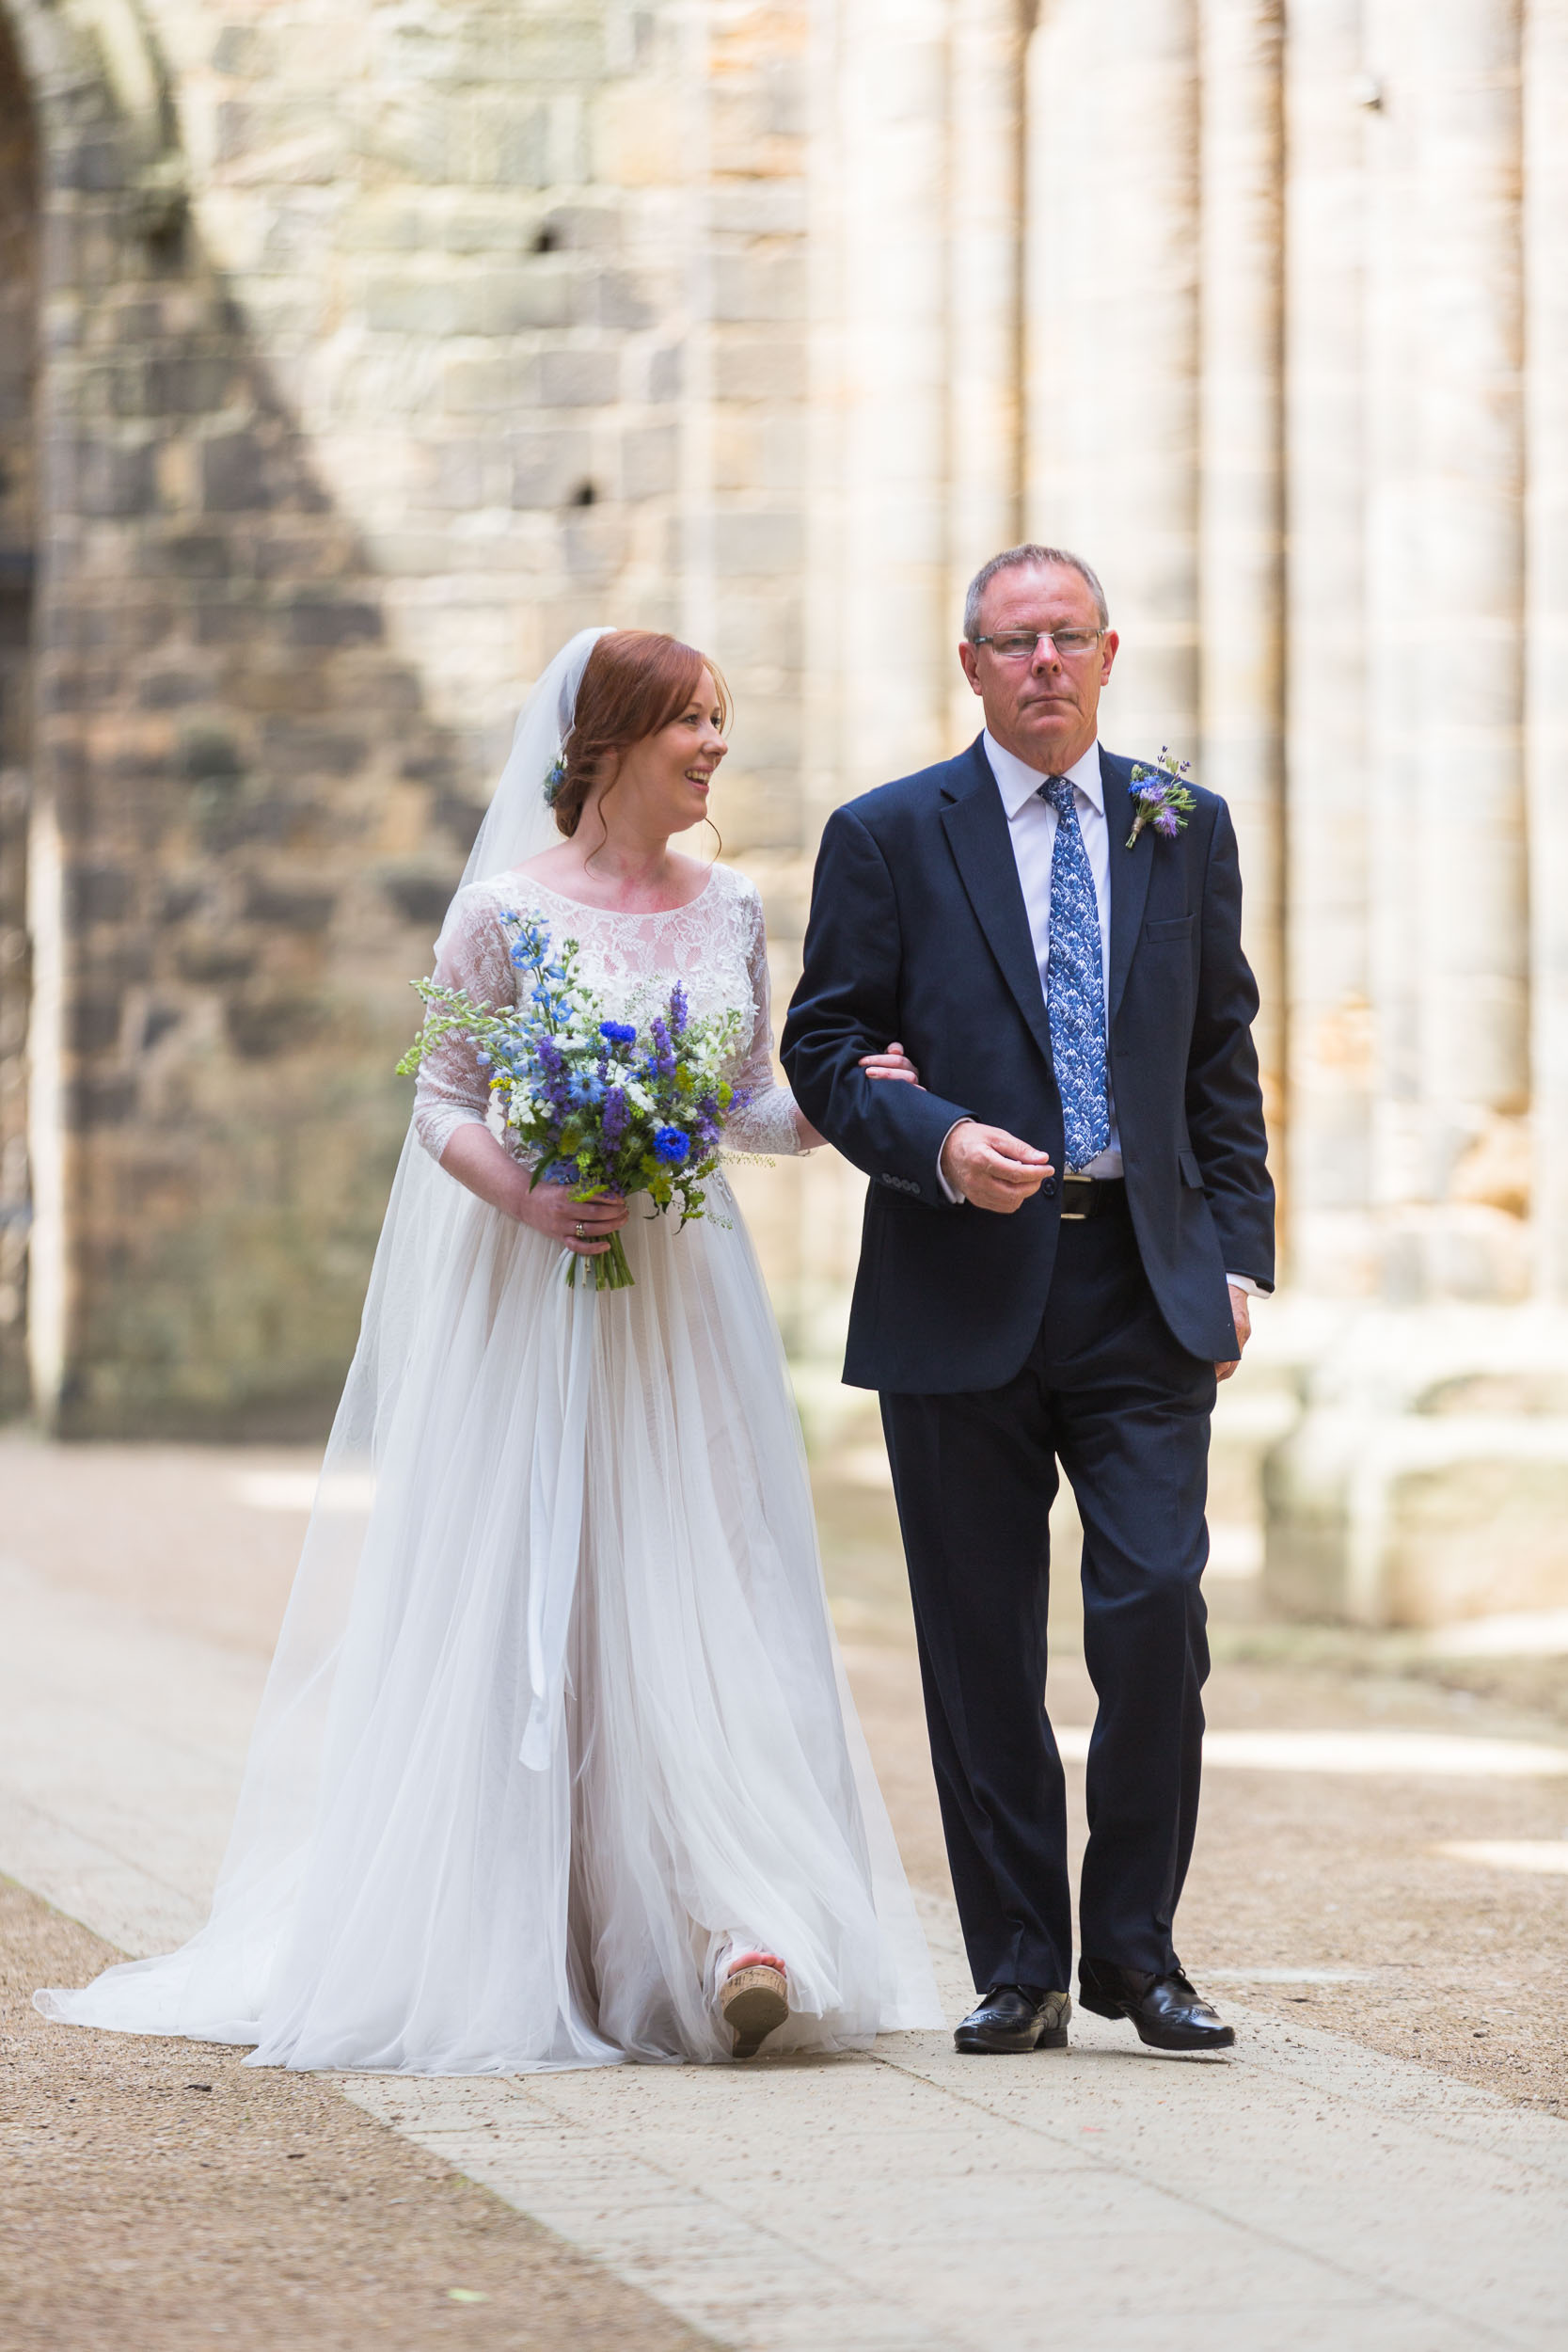 Amy & Oliver-Wedding Part II-Kirkstall Abbey-Leeds-photo-0153.jpg